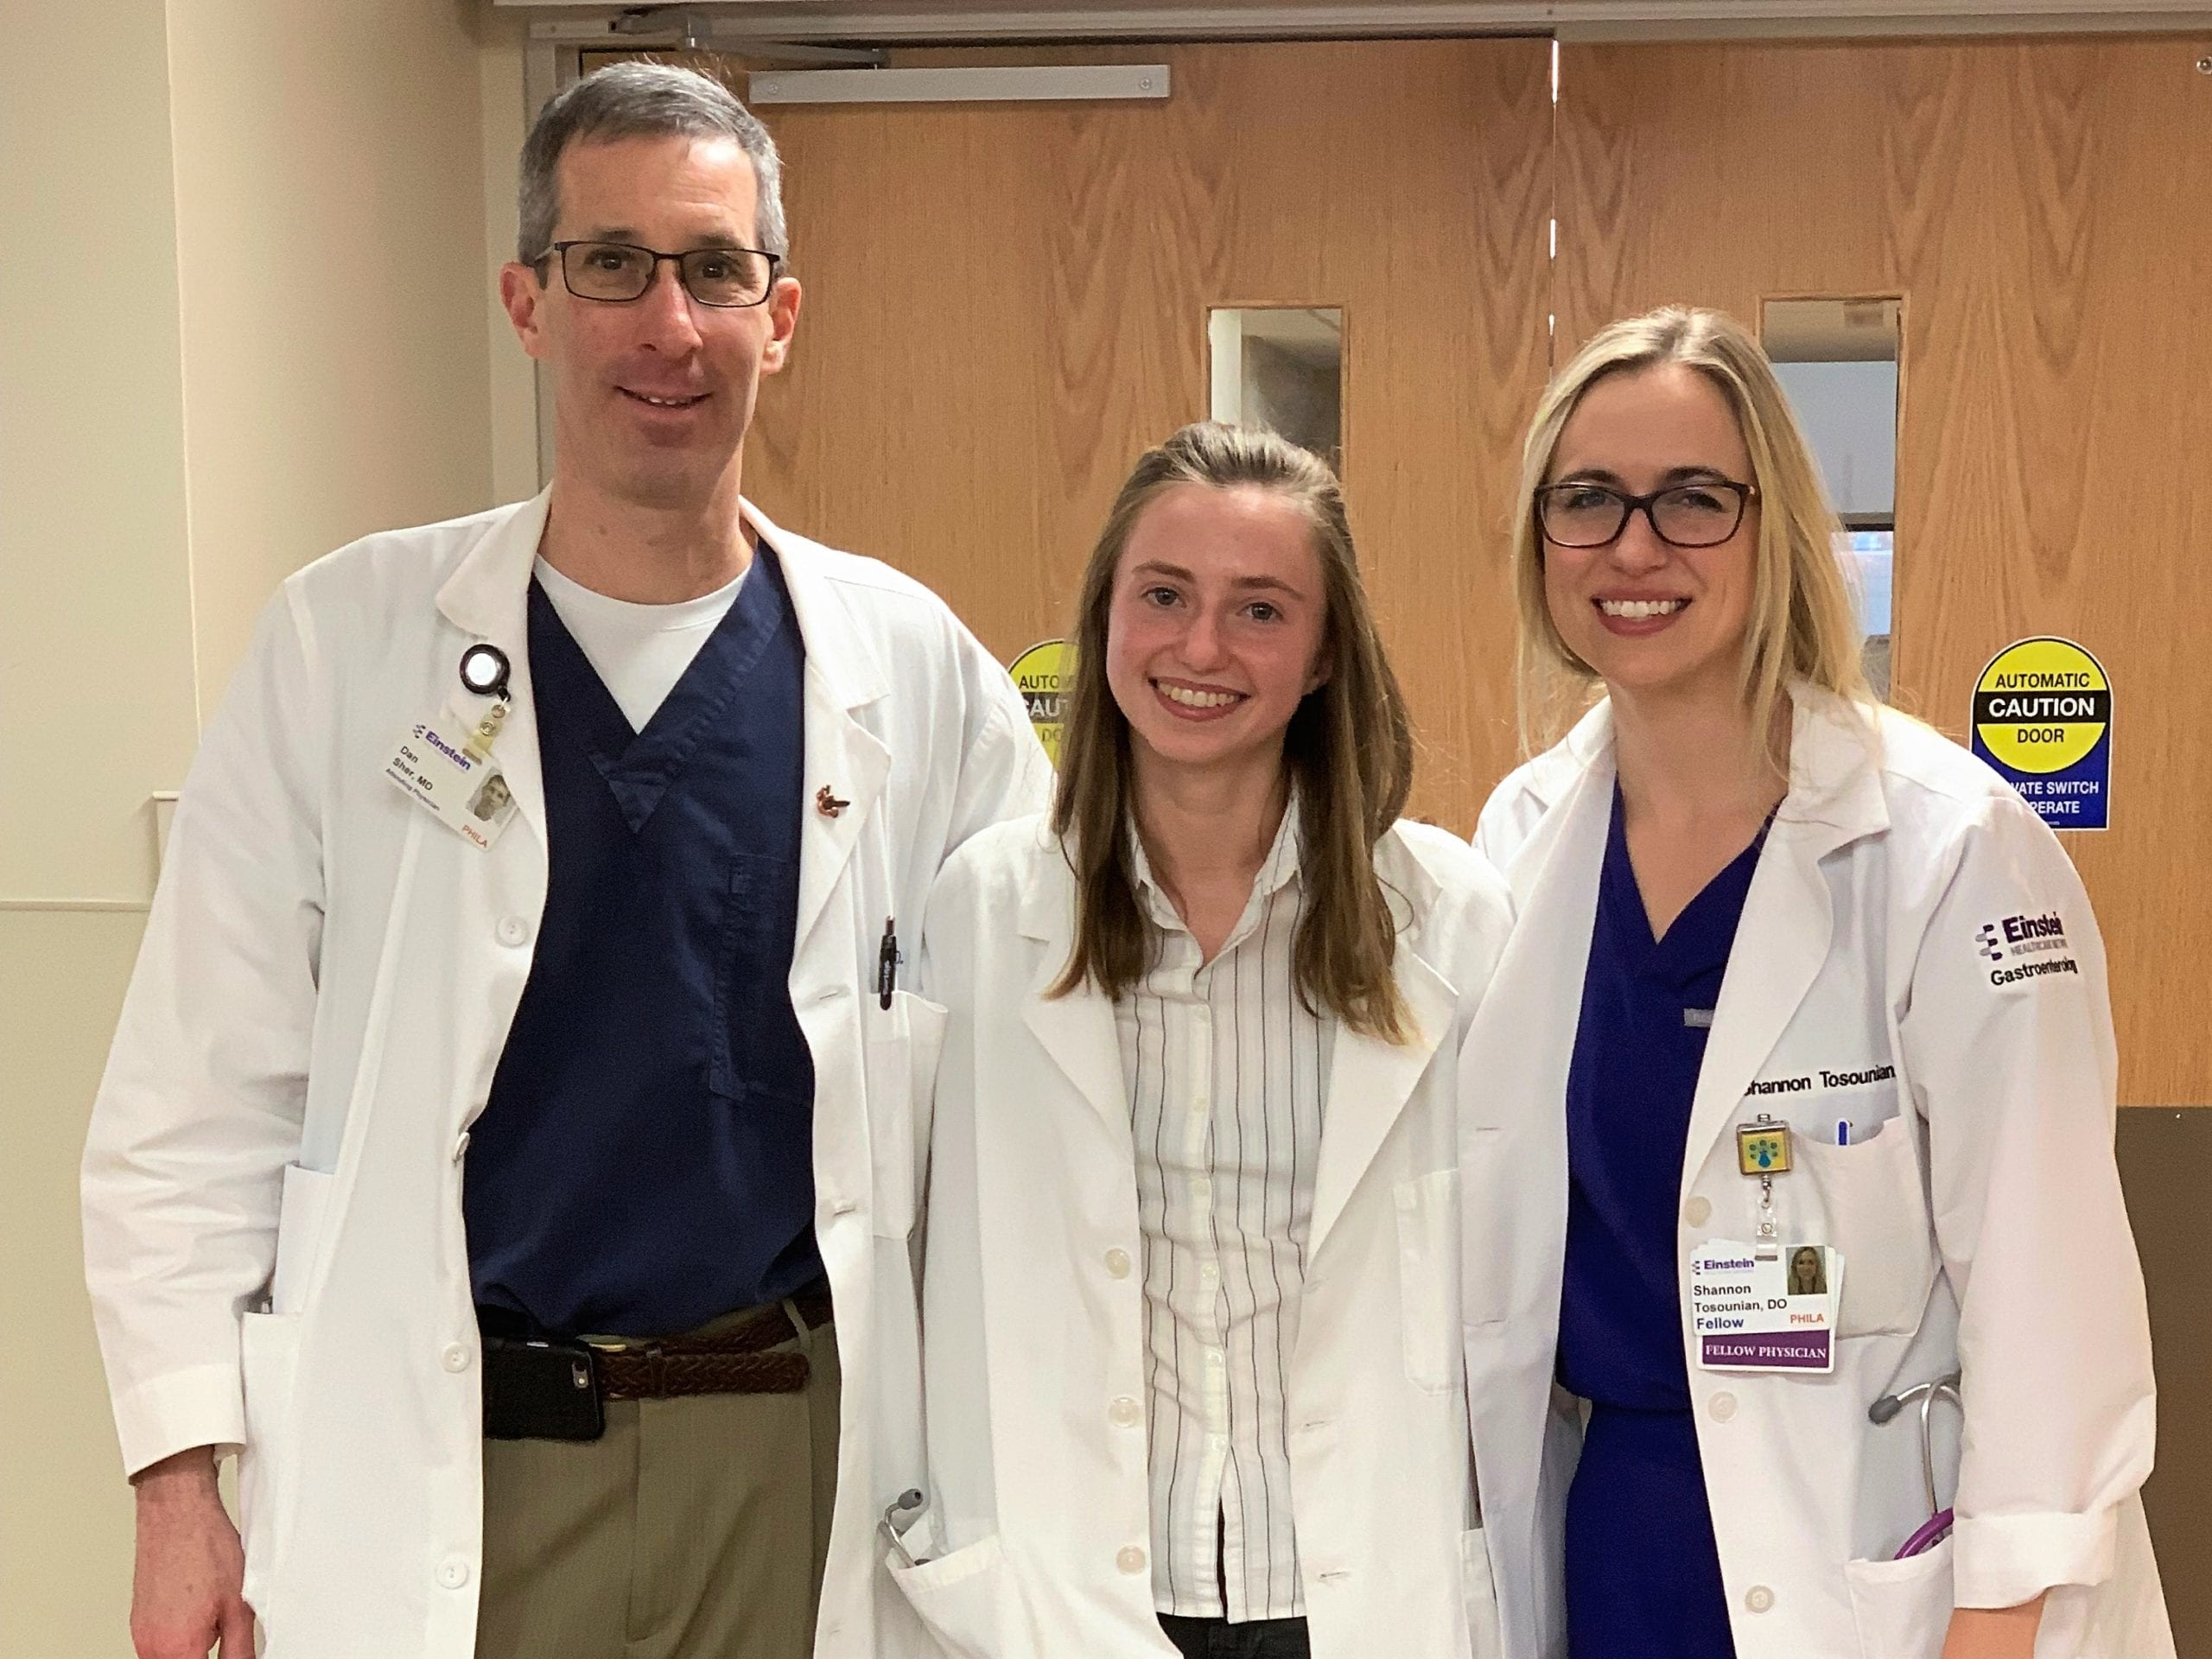 Griffin Kaulbach with extern sponsor, Dr. Dan Sher '85, and his fellow physician Shannon Tosounian at Einstein Medical Center in Philadelphia.